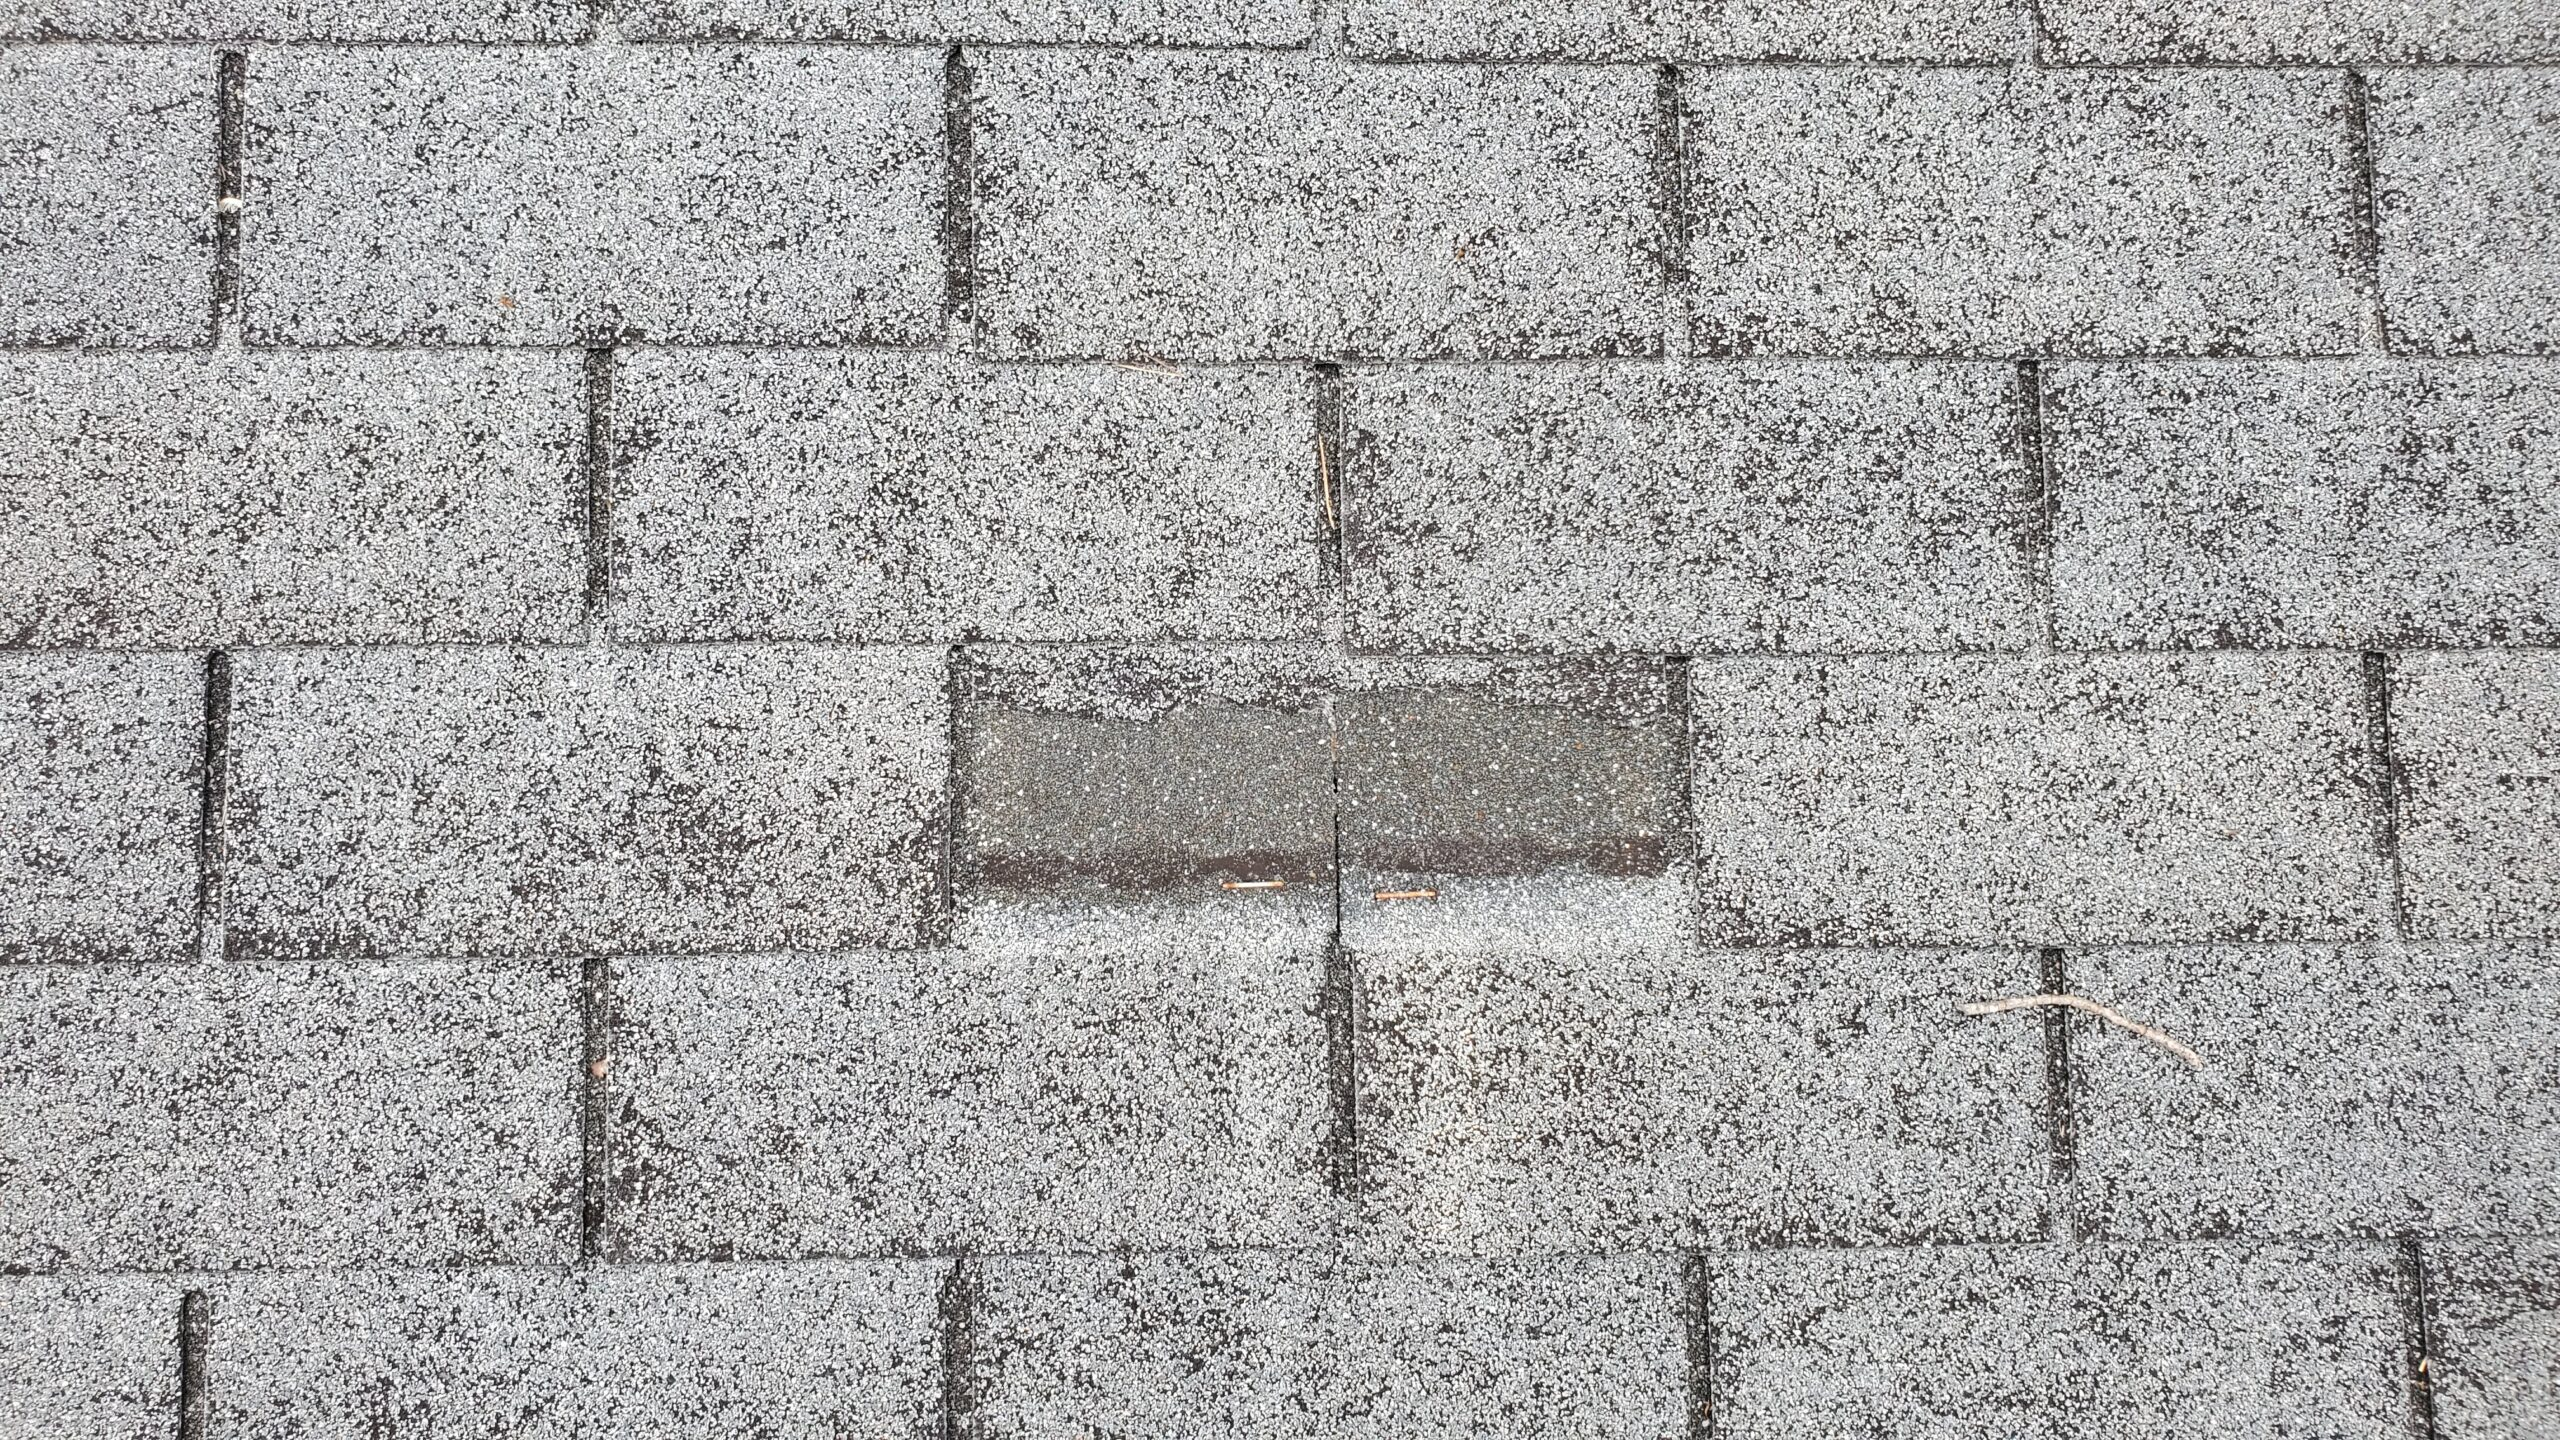 This is a close up picture of a small section of grey shingles And one of the shingles is missing